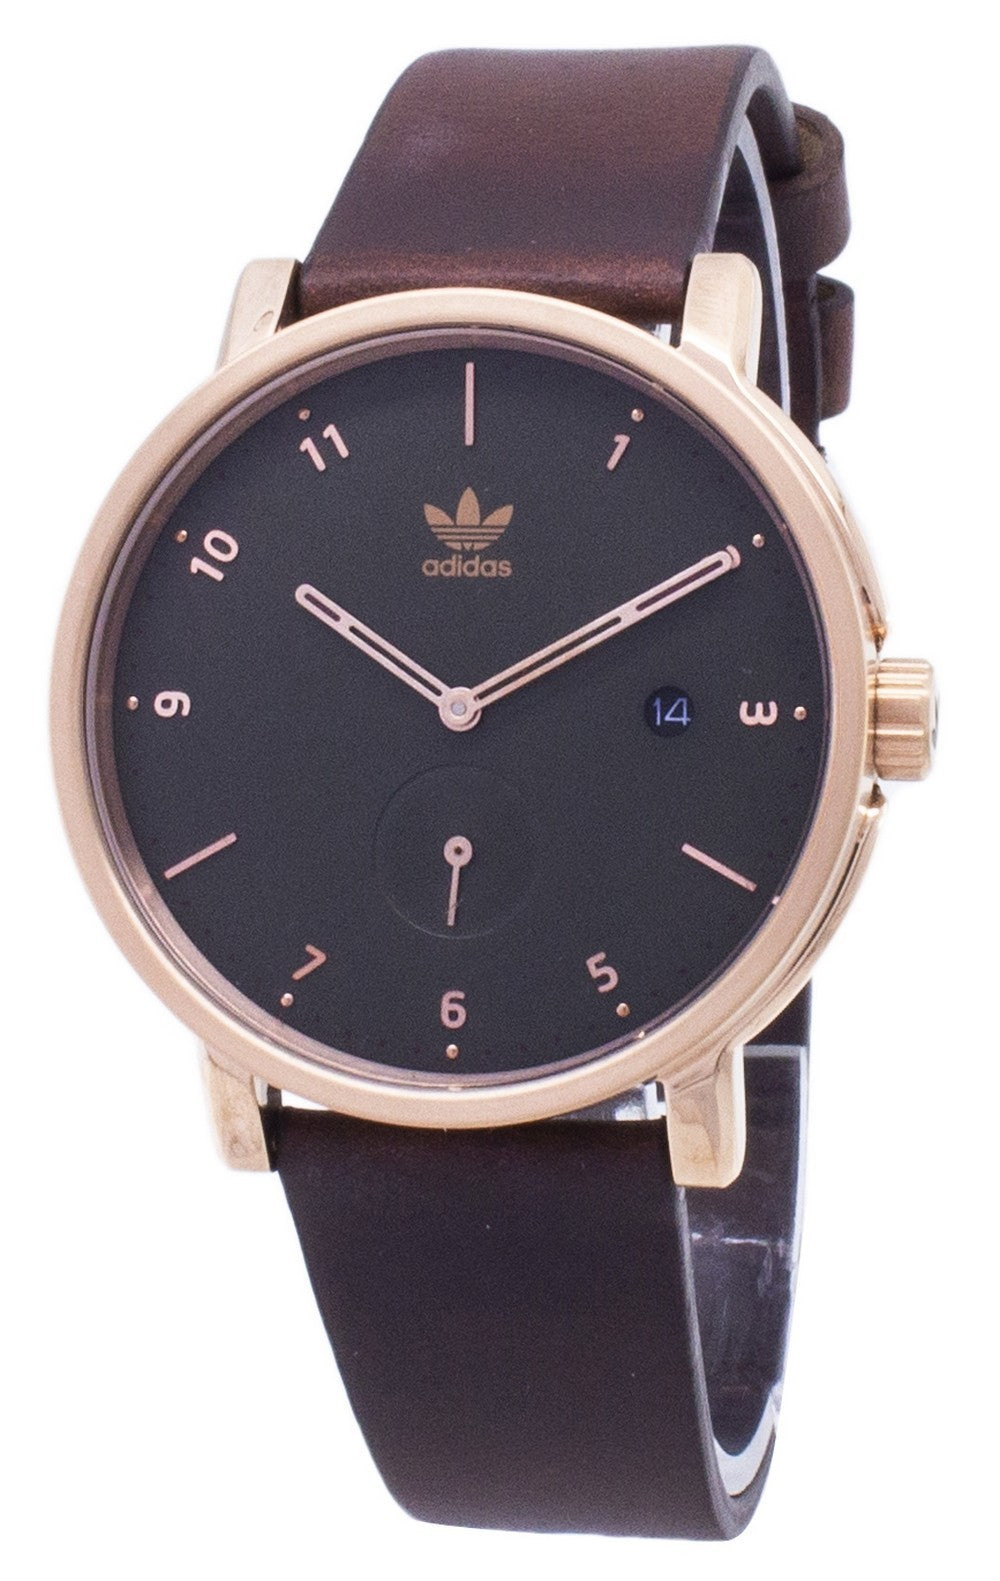 Adidas District LX2  Z12-3038-00 Quartz Analog Men's Watch, best prices, cheapest, discount, new, Cruze Watches